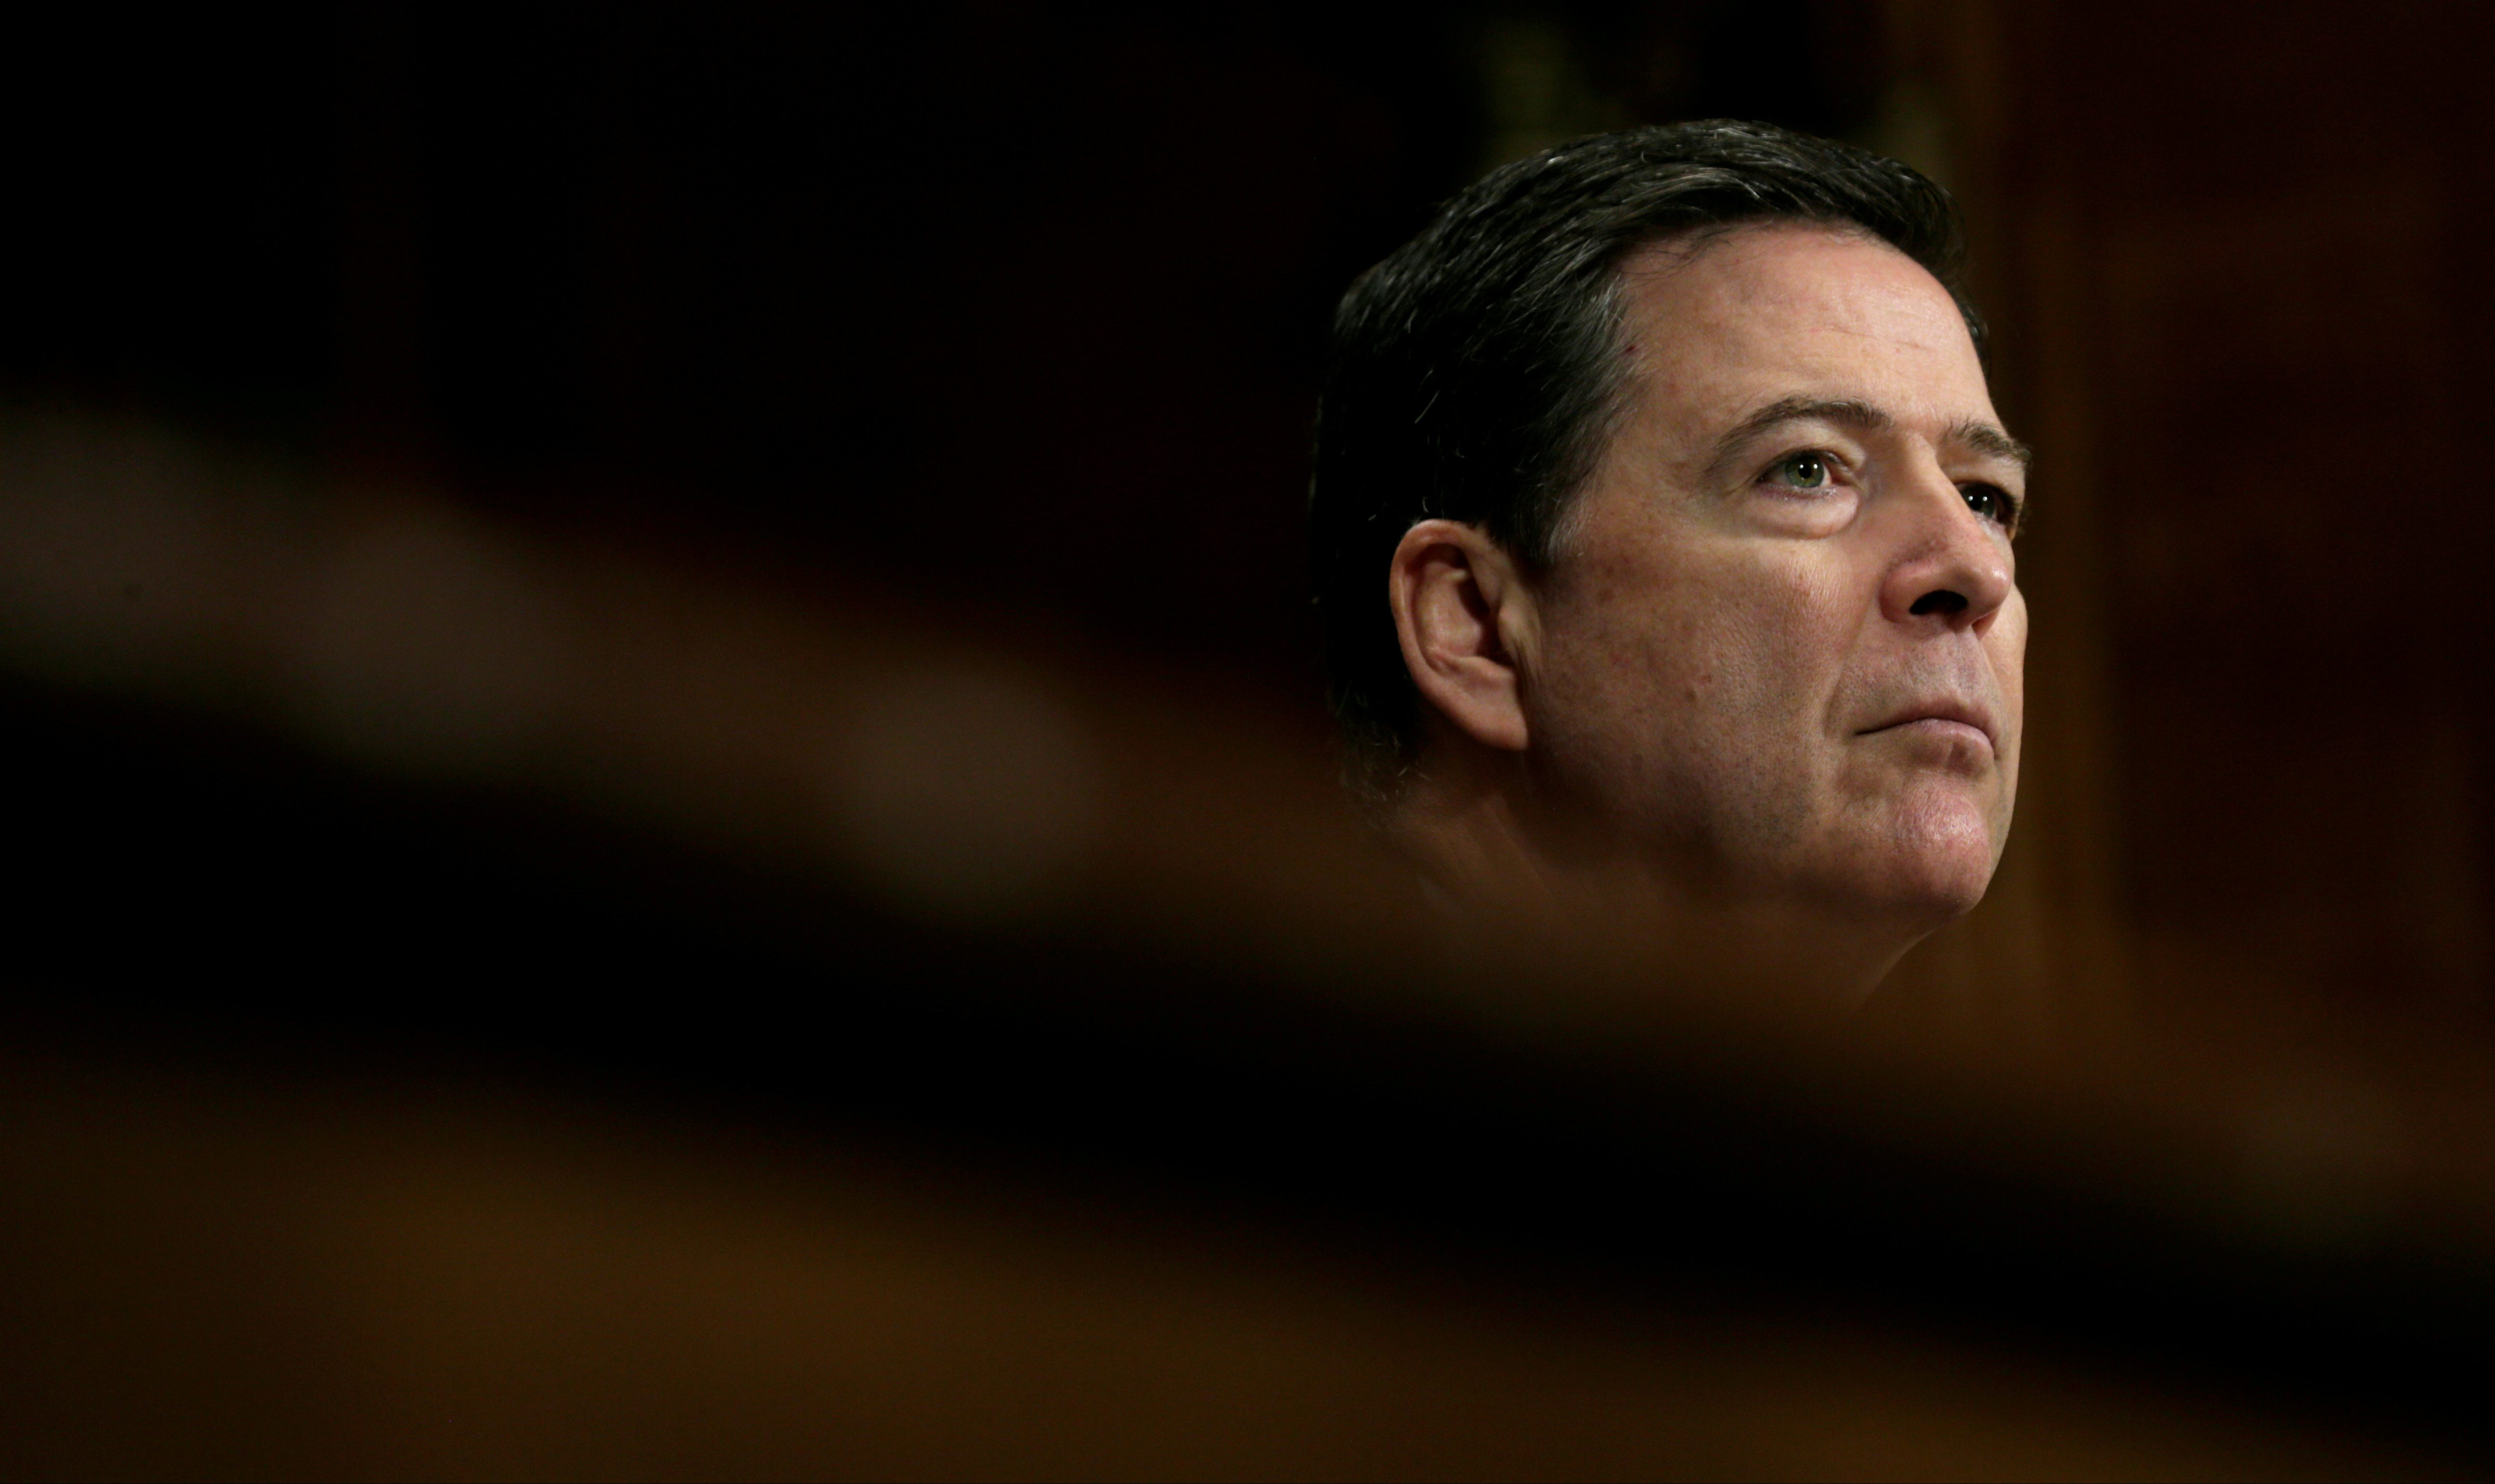 """FILE PHOTO: FBI Director James Comey testifies before a Senate Judiciary Committee hearing on """"Oversight of the Federal Bureau of Investigation"""" on Capitol Hill in Washington, U.S., May 3, 2017. REUTERS/Kevin Lamarque/File Photo - RTS15WUX"""